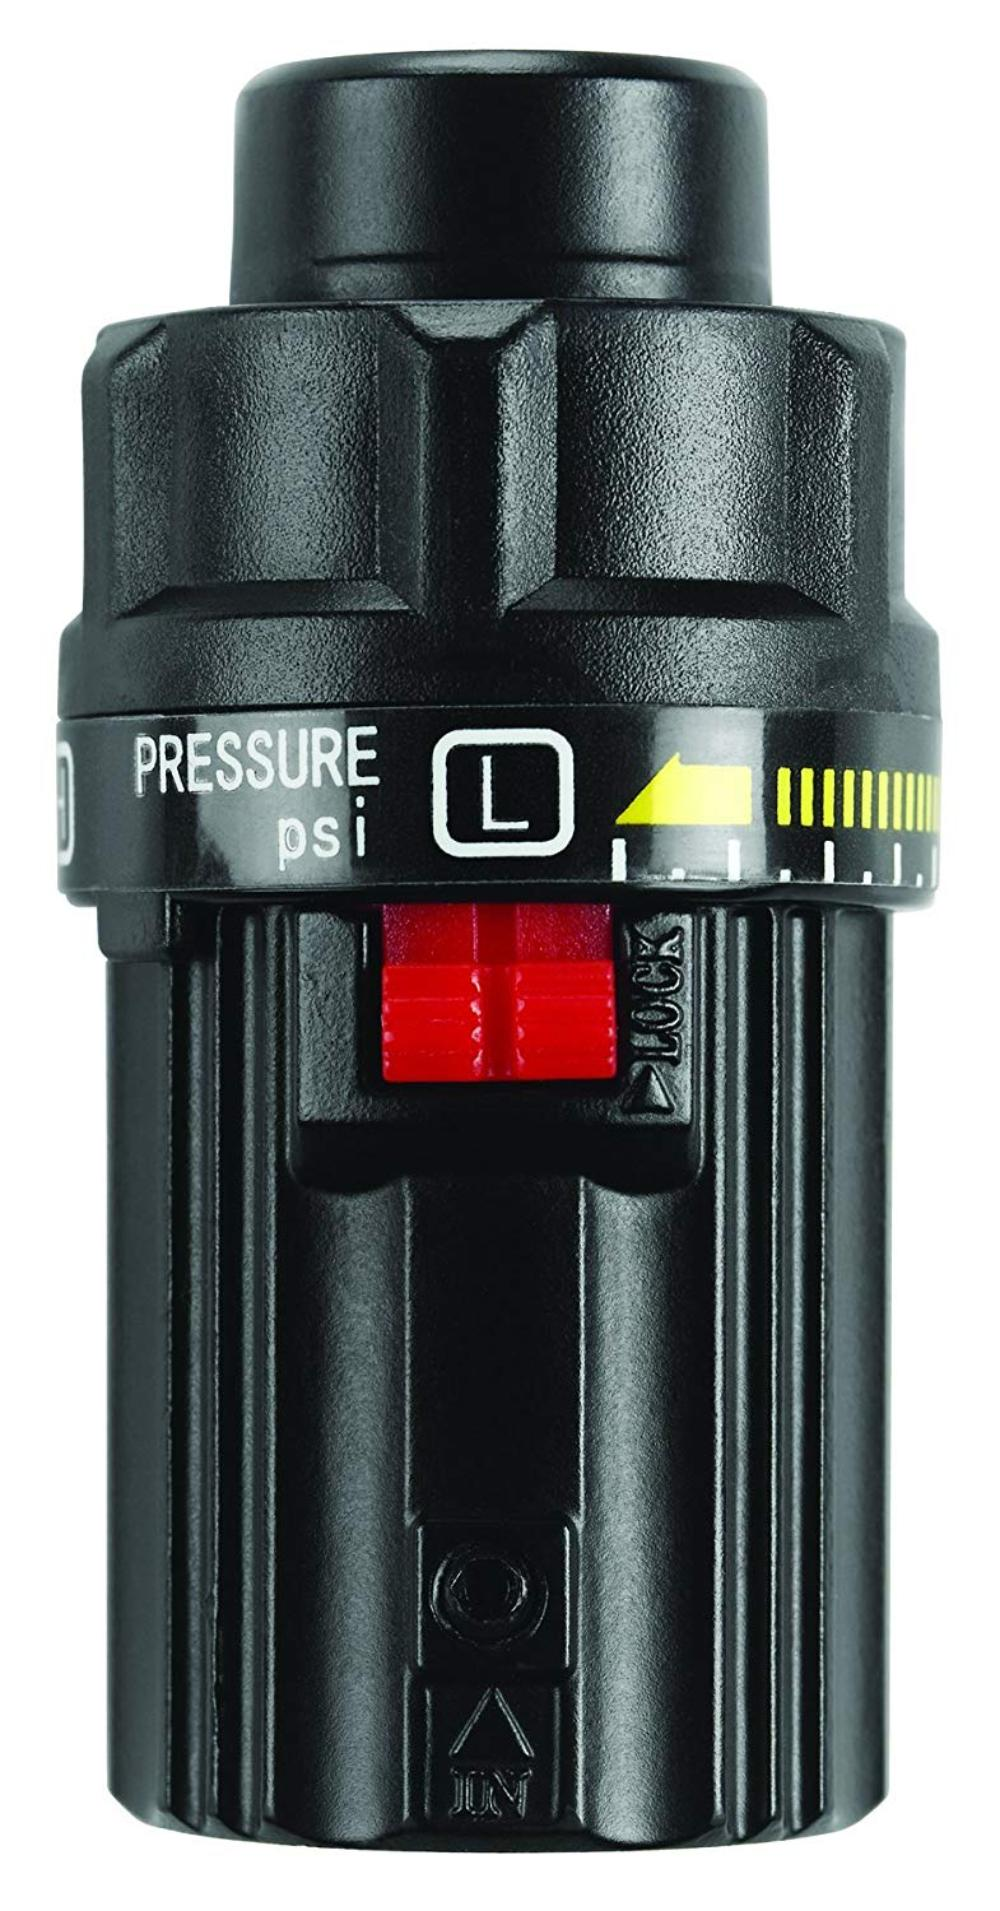 41-145 At-Hand Inline Air Regulator Tool, Supply pressure of 150-400 PSI By Plews by